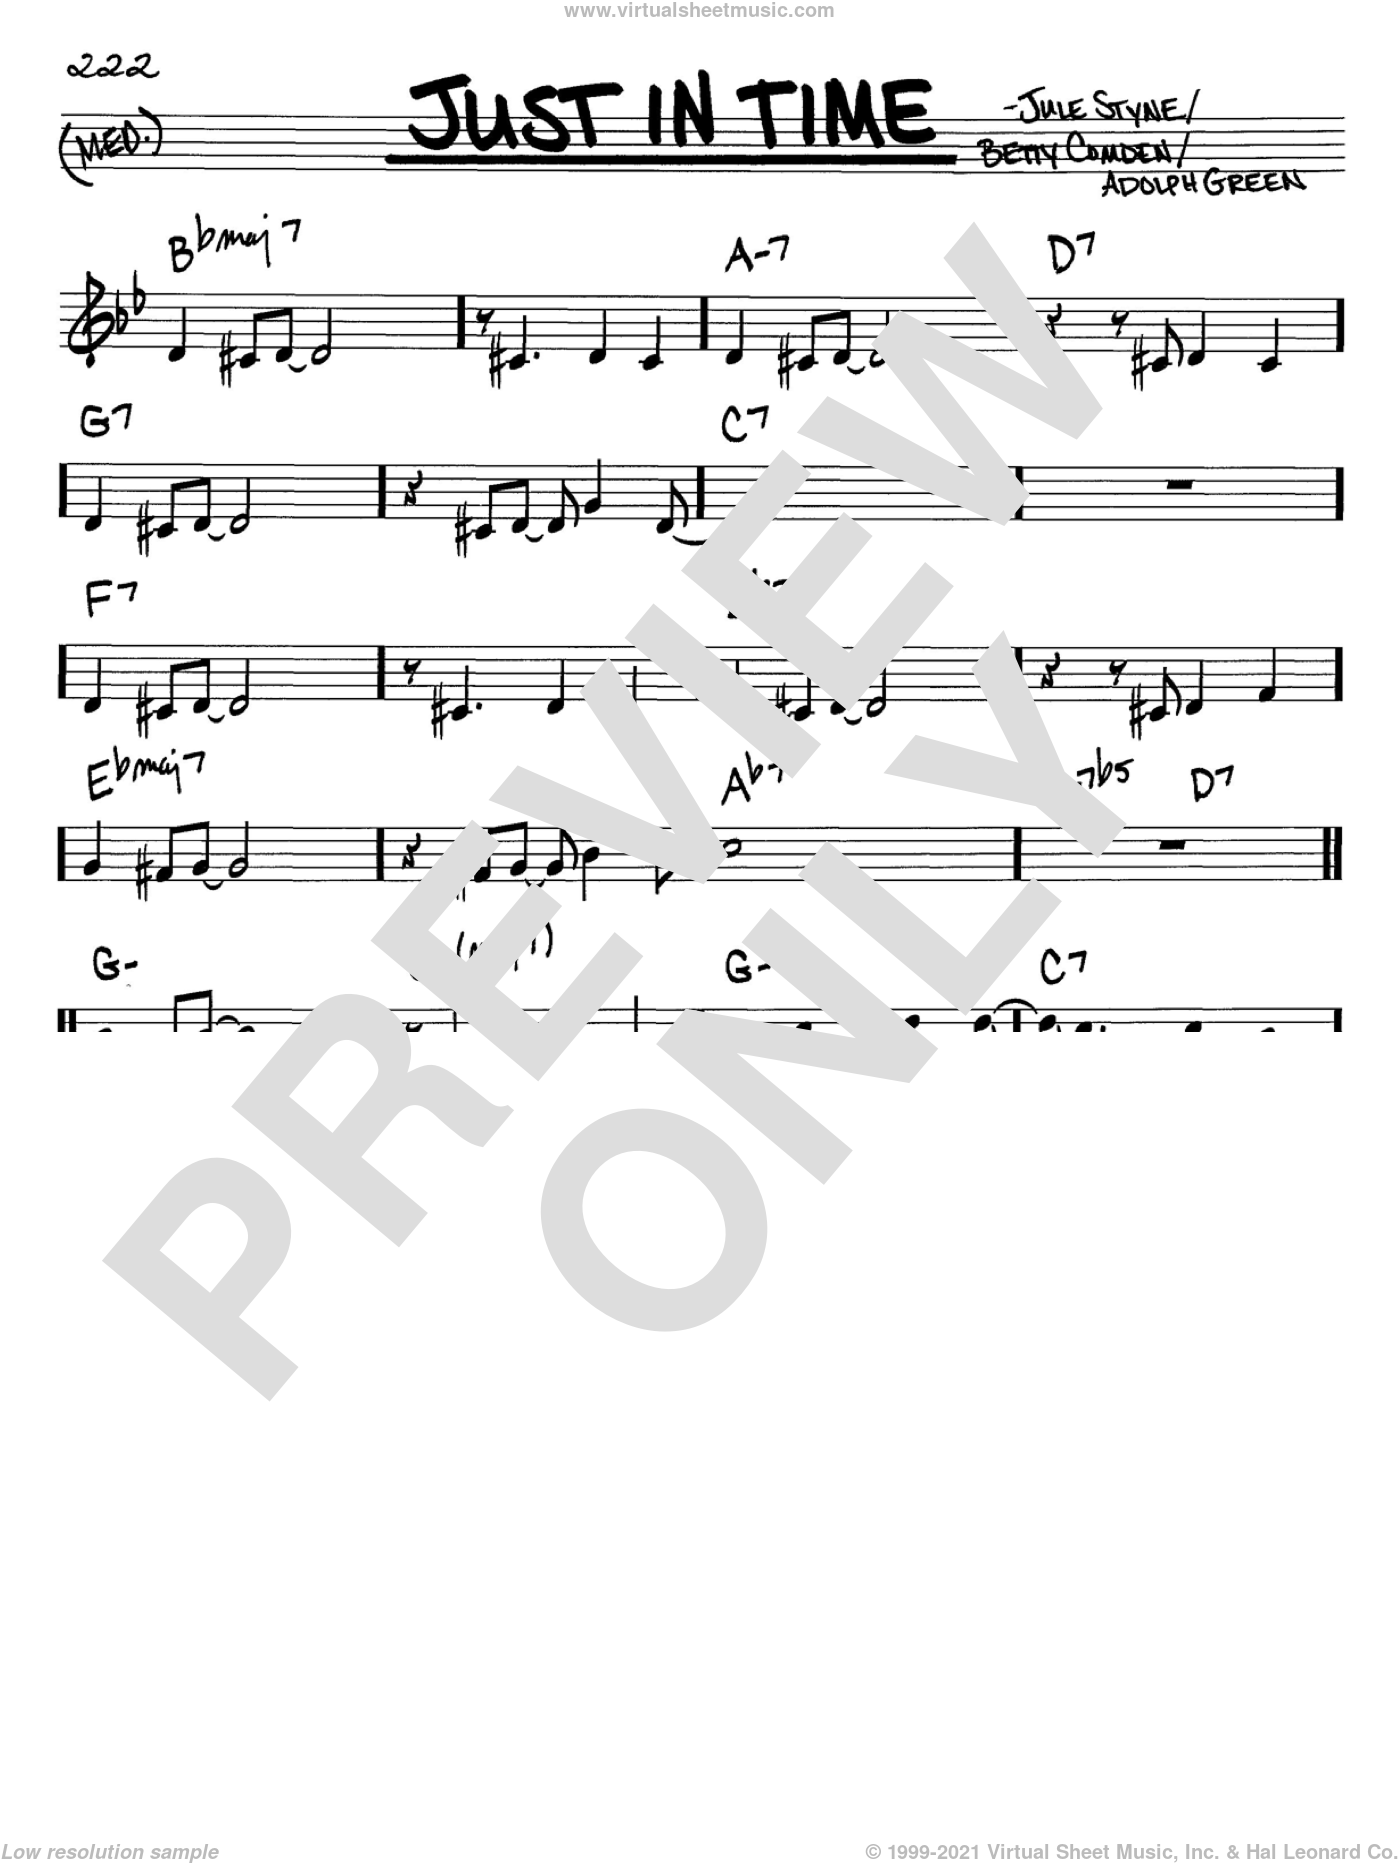 Just In Time sheet music for voice and other instruments (C) by Frank Sinatra, Adolph Green, Betty Comden and Jule Styne, intermediate. Score Image Preview.